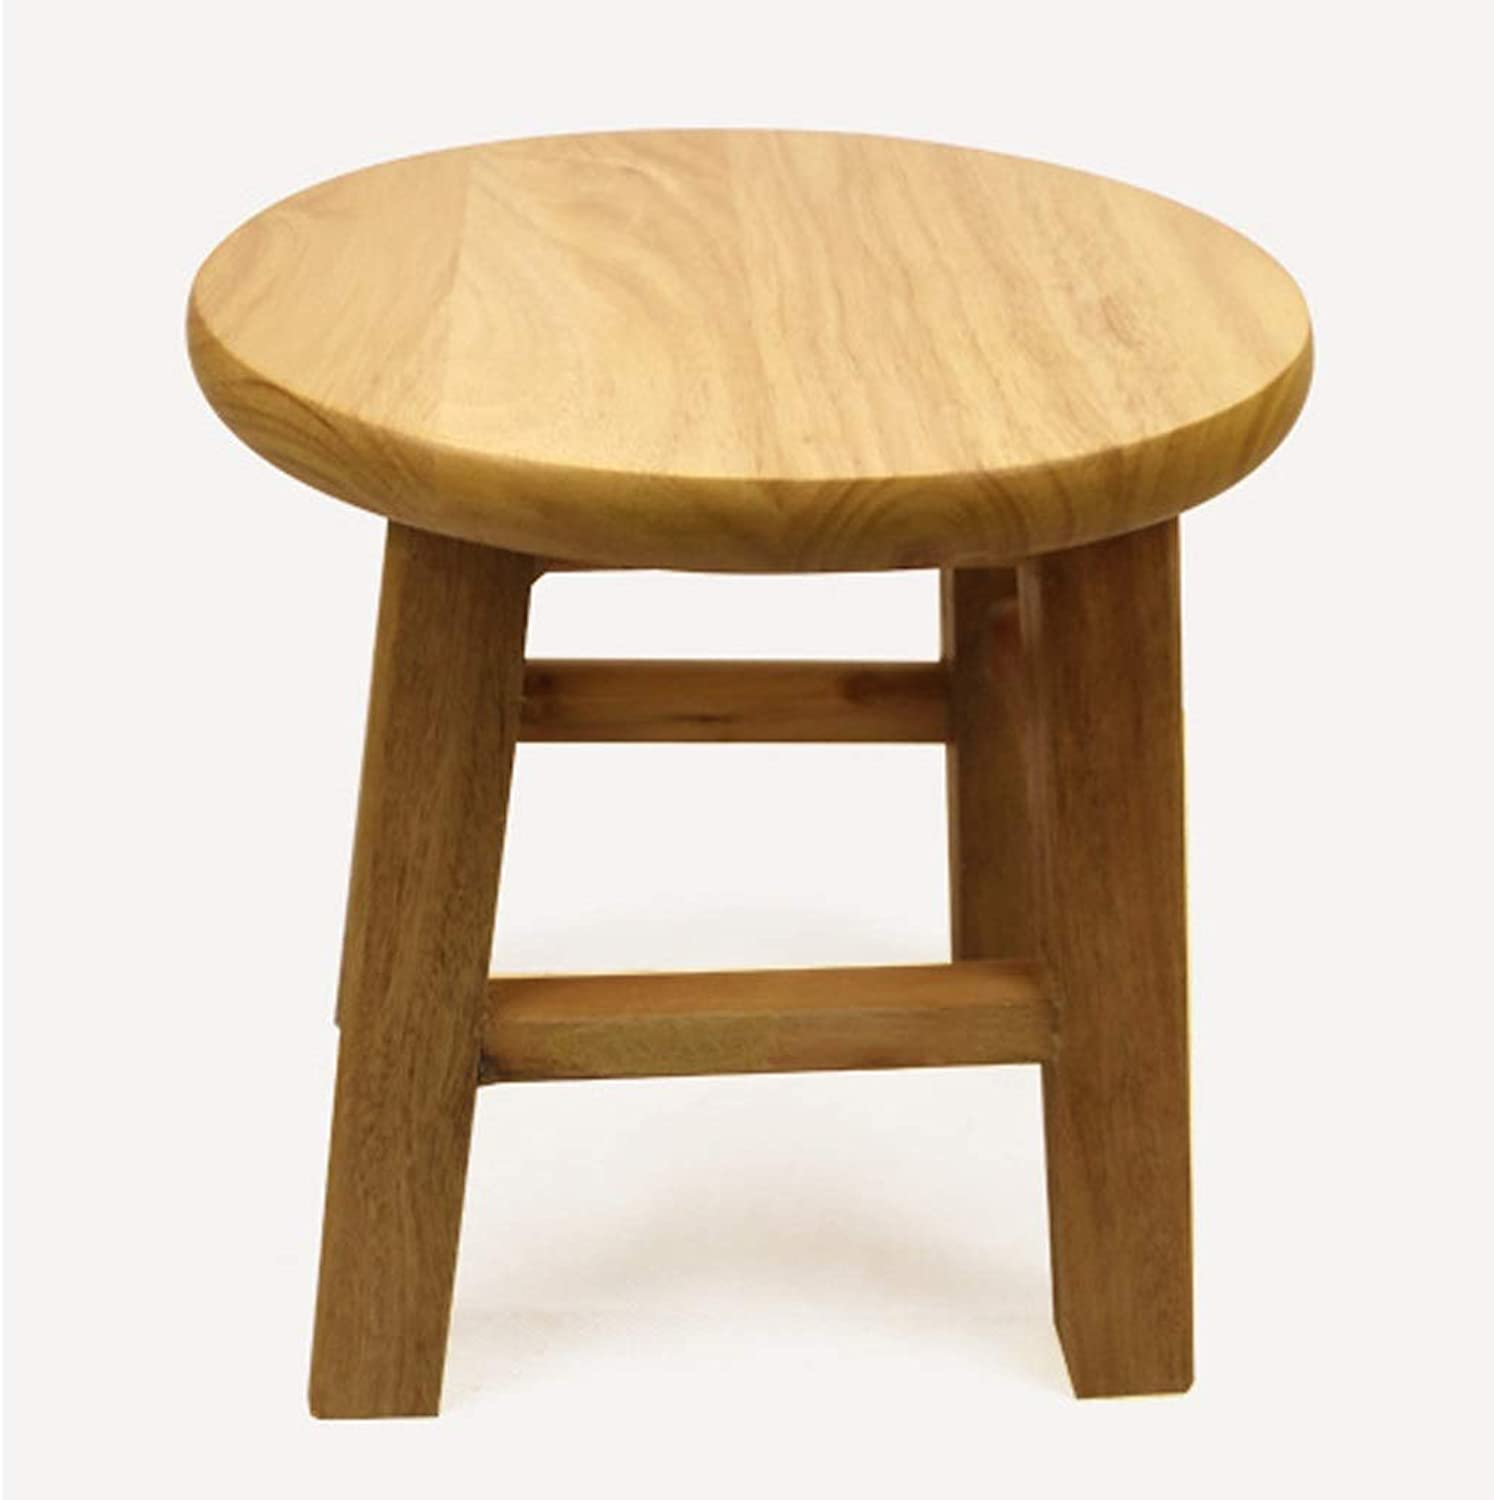 Lsxlsd Solid Wood Stool Home Small Bench Fashion Creative Stool Simple Modern Footstool Change shoes Stool Adult Small Wooden Bench